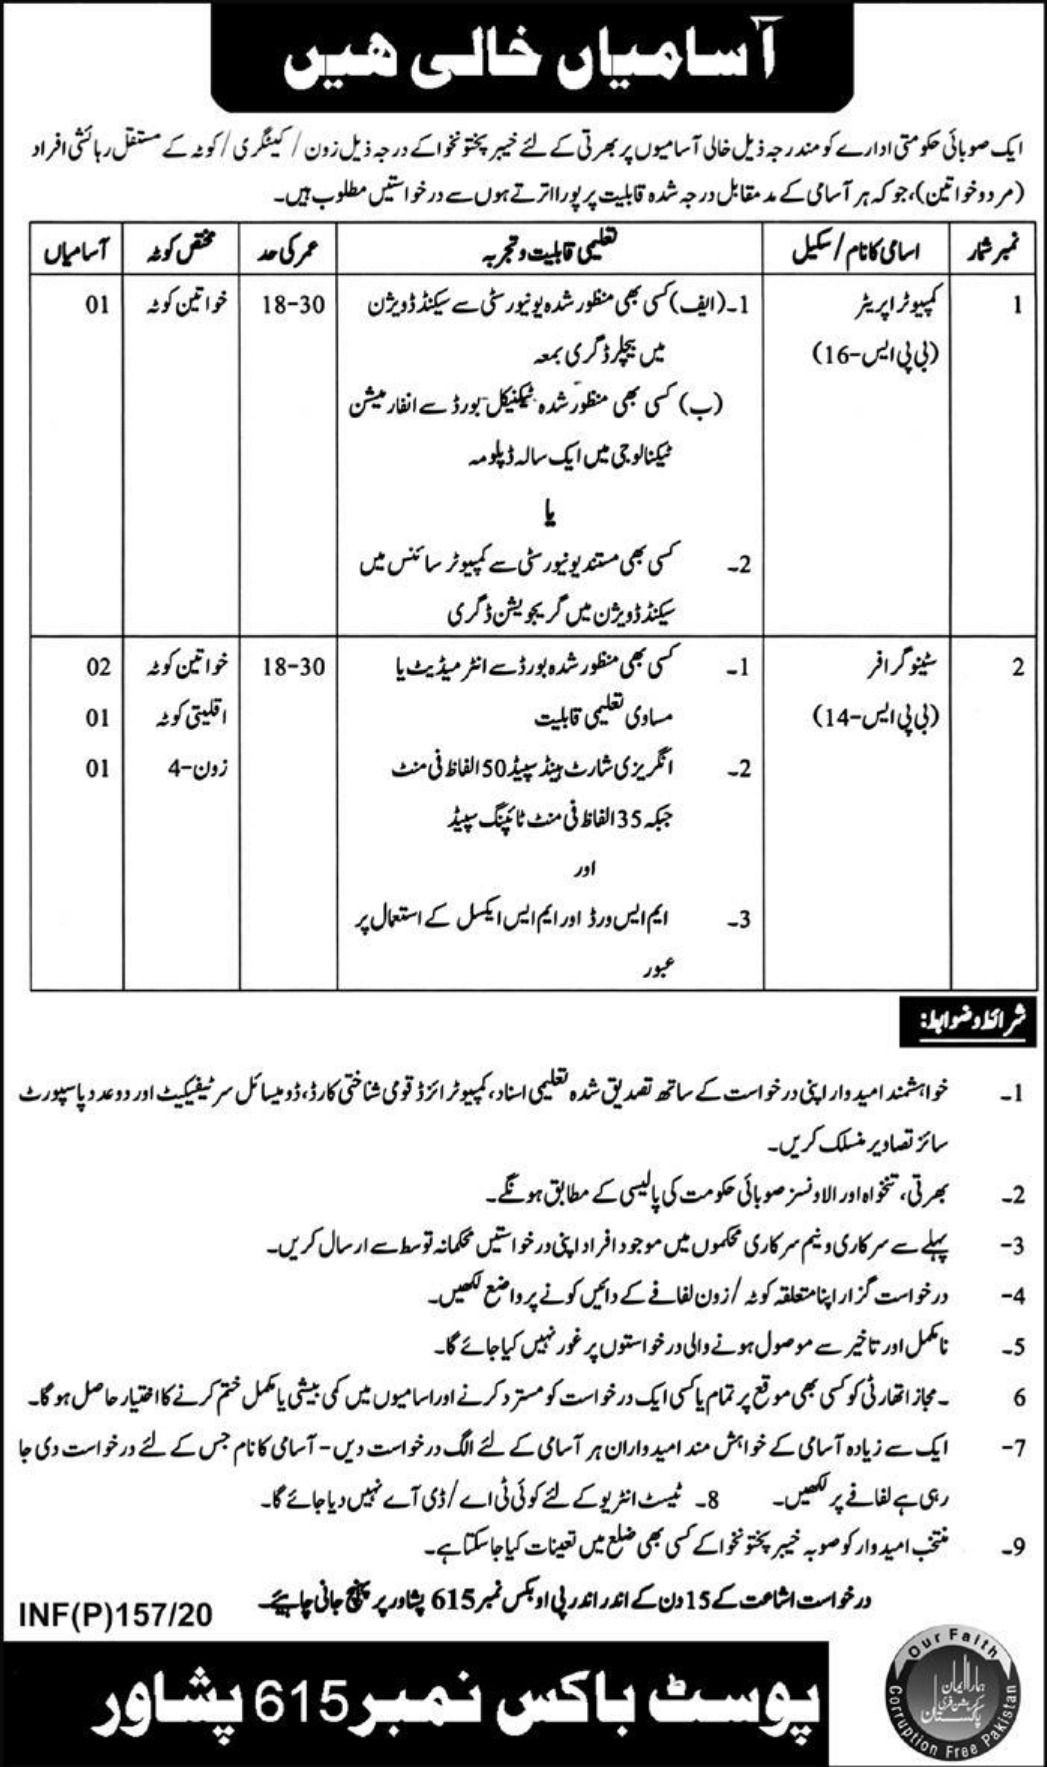 Public Sector Organization Jobs 2020 P.O.Box 615 Peshawar